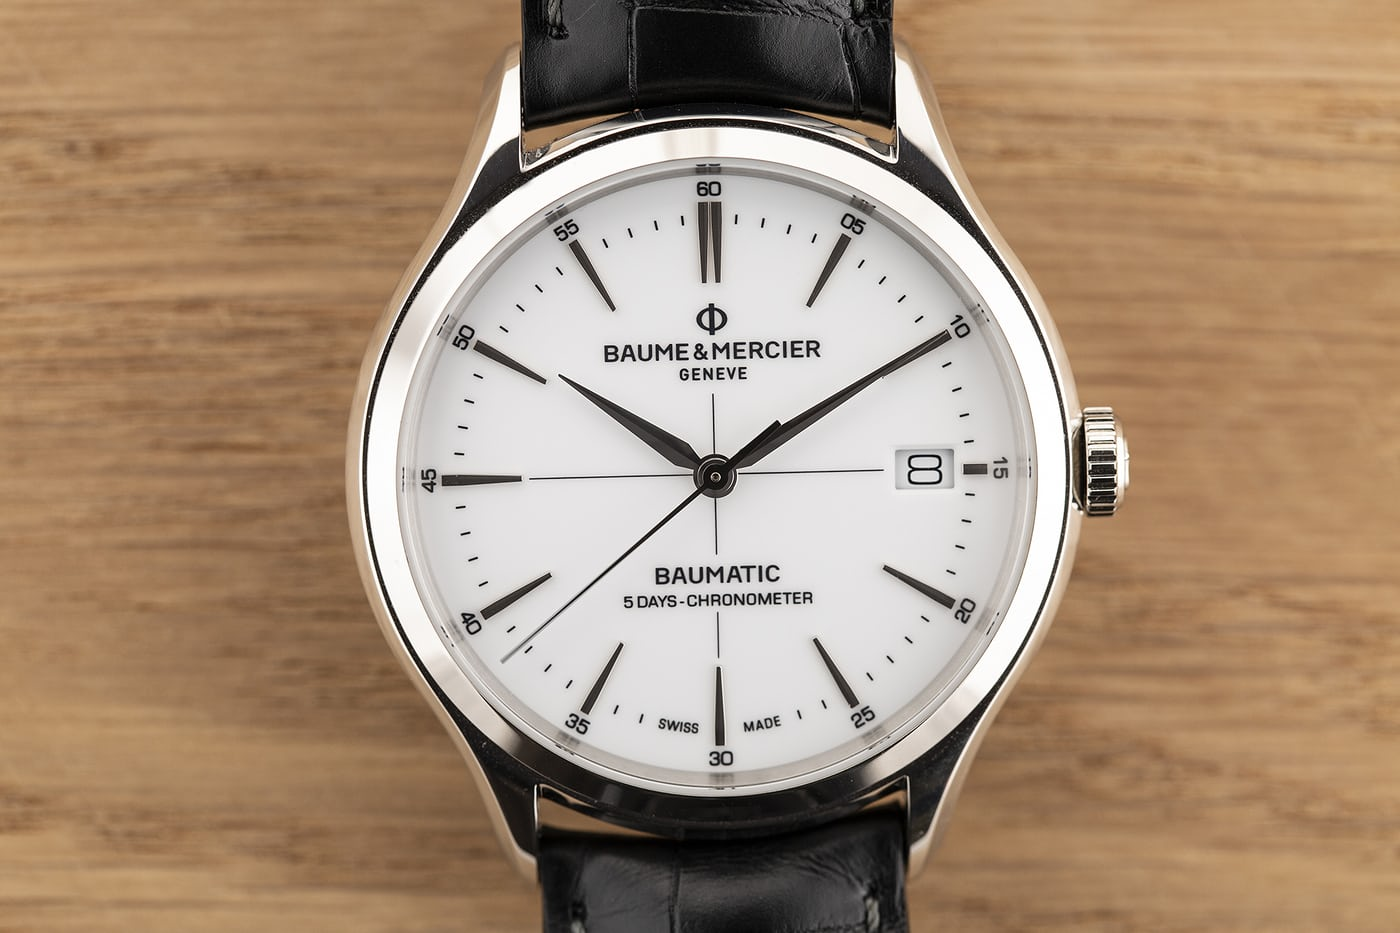 A Week On The Wrist The Baume & Mercier Clifton Baumatic COSC